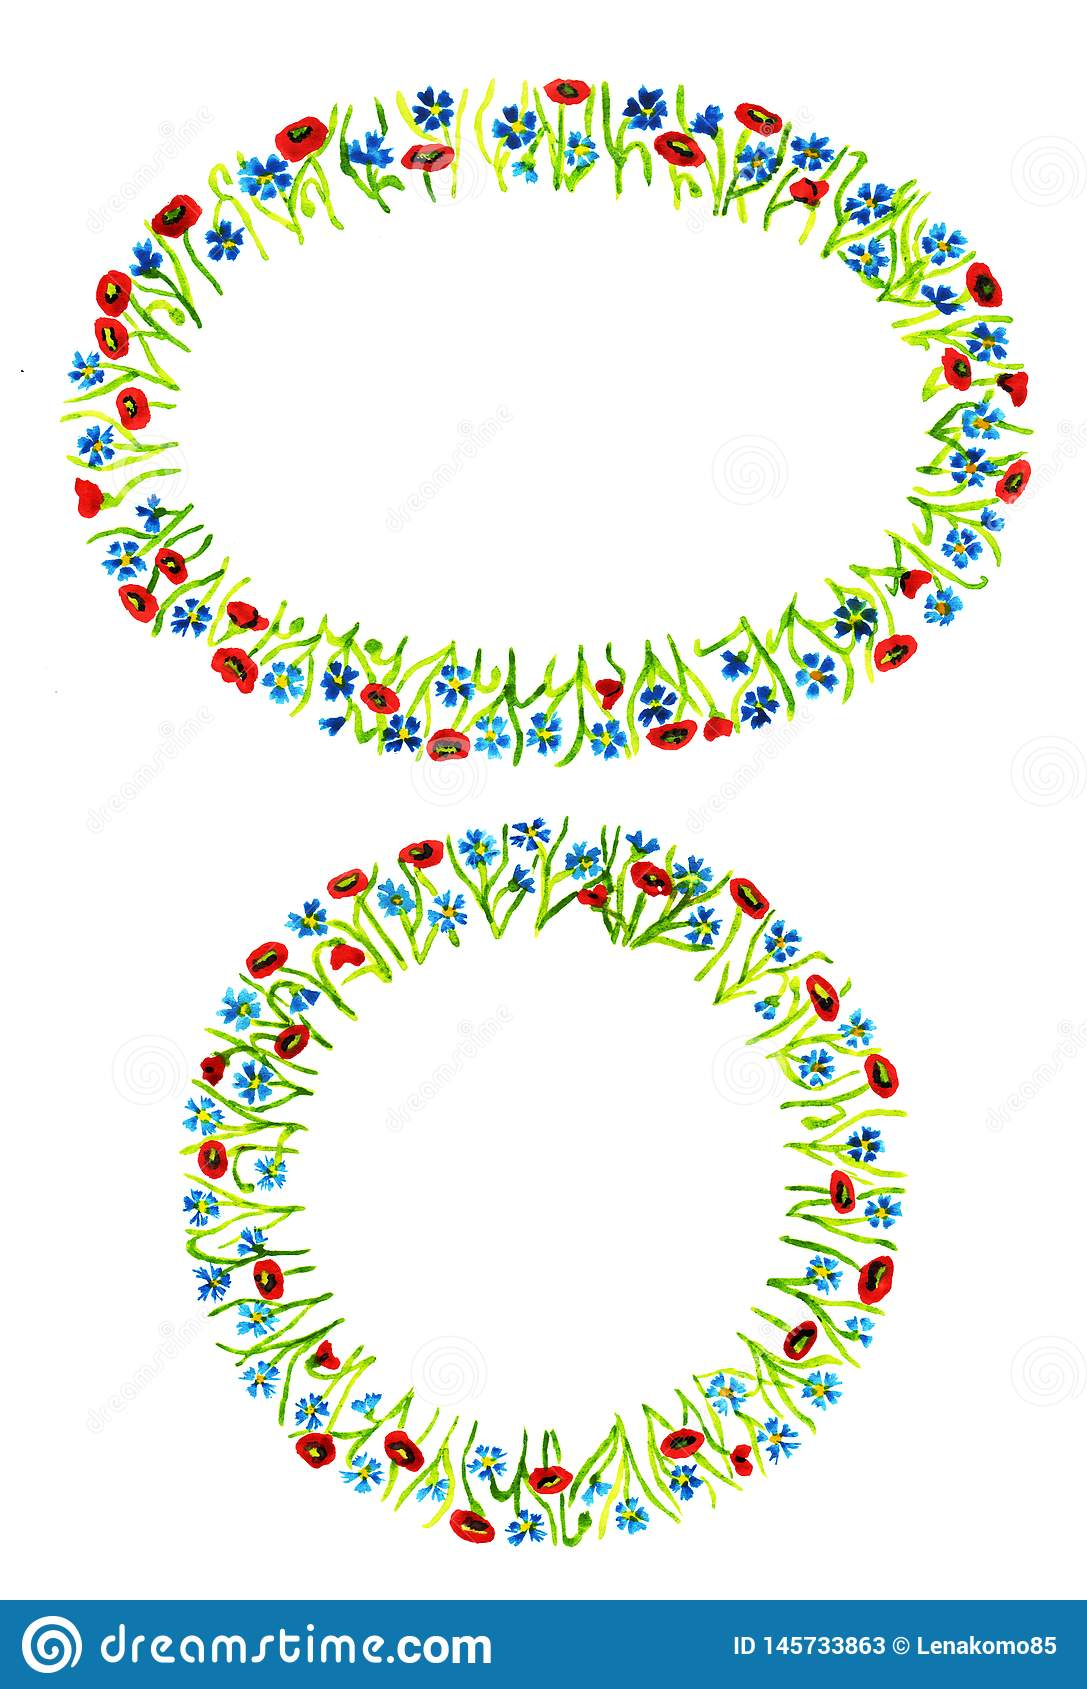 Set of two different shaped floral frames isolated on white background.